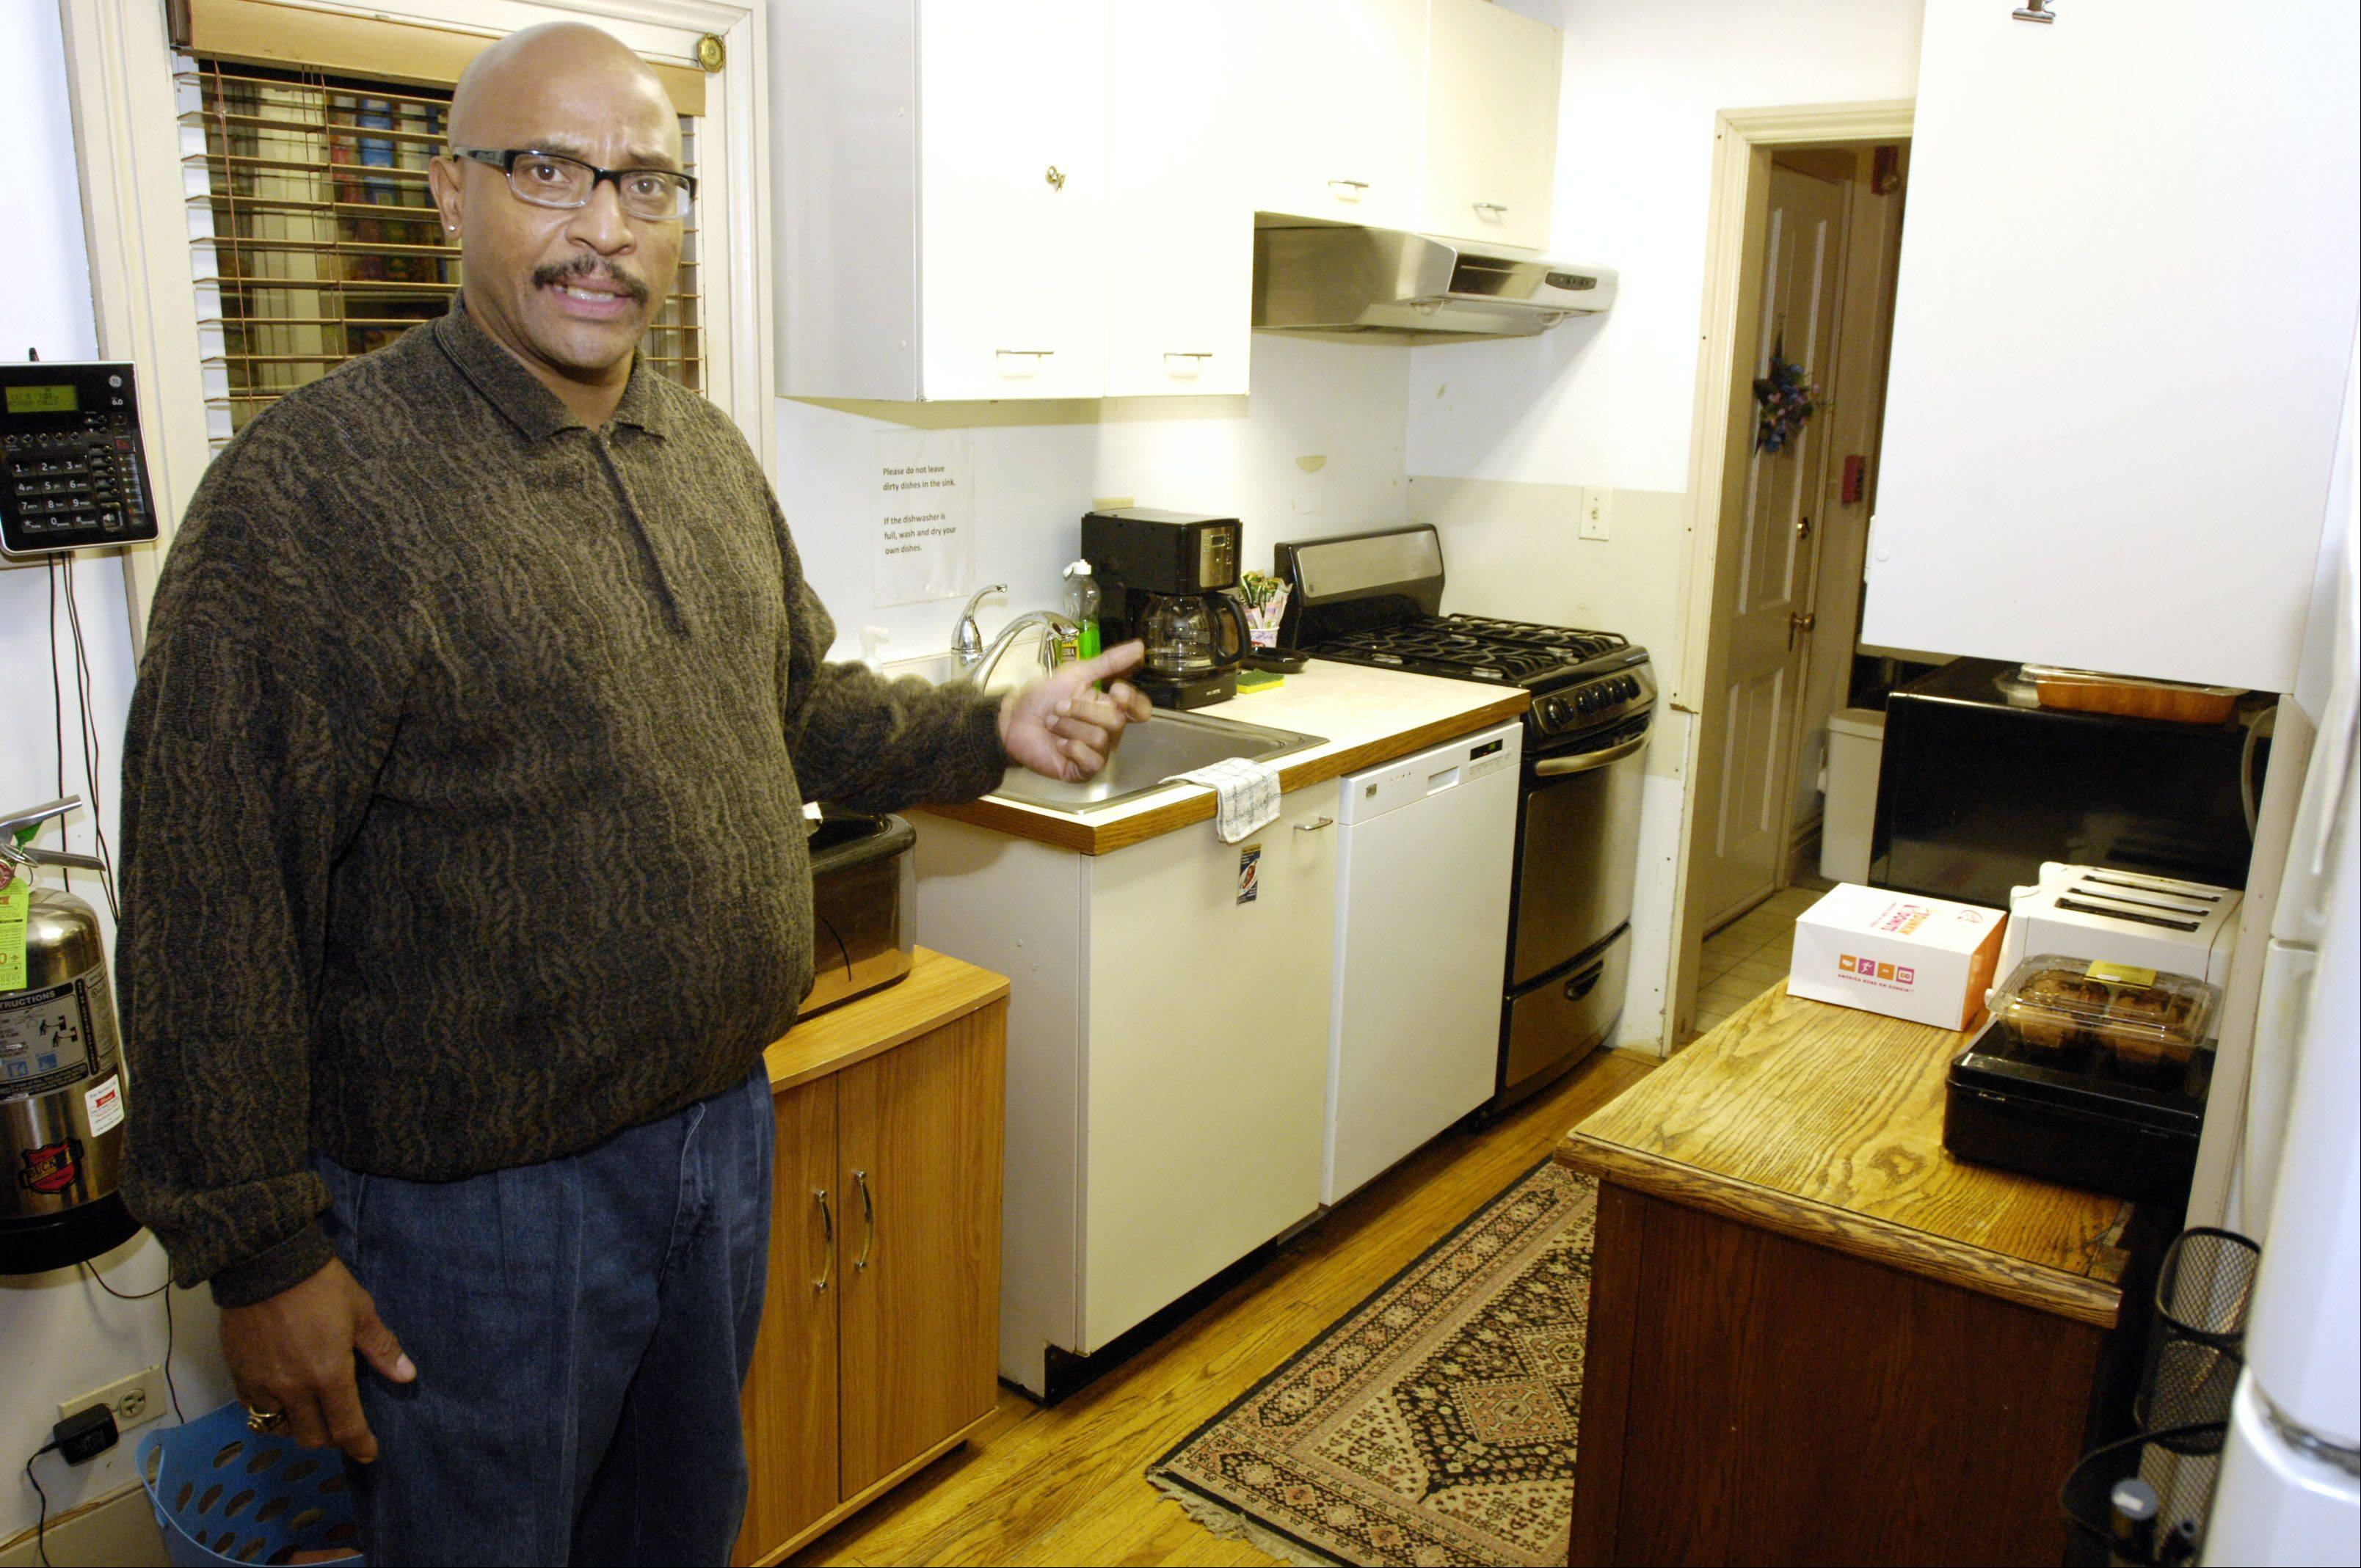 Vietnam-era veteran Terry Barnes lives at the Midwest Shelter of Homeless Veterans in Wheaton. He served in the Marines from 1975-1979. Barnes currently works as a chef at Edward Hines Jr. VA hospital in Hines and was planning to move into an apartment Dec. 1.